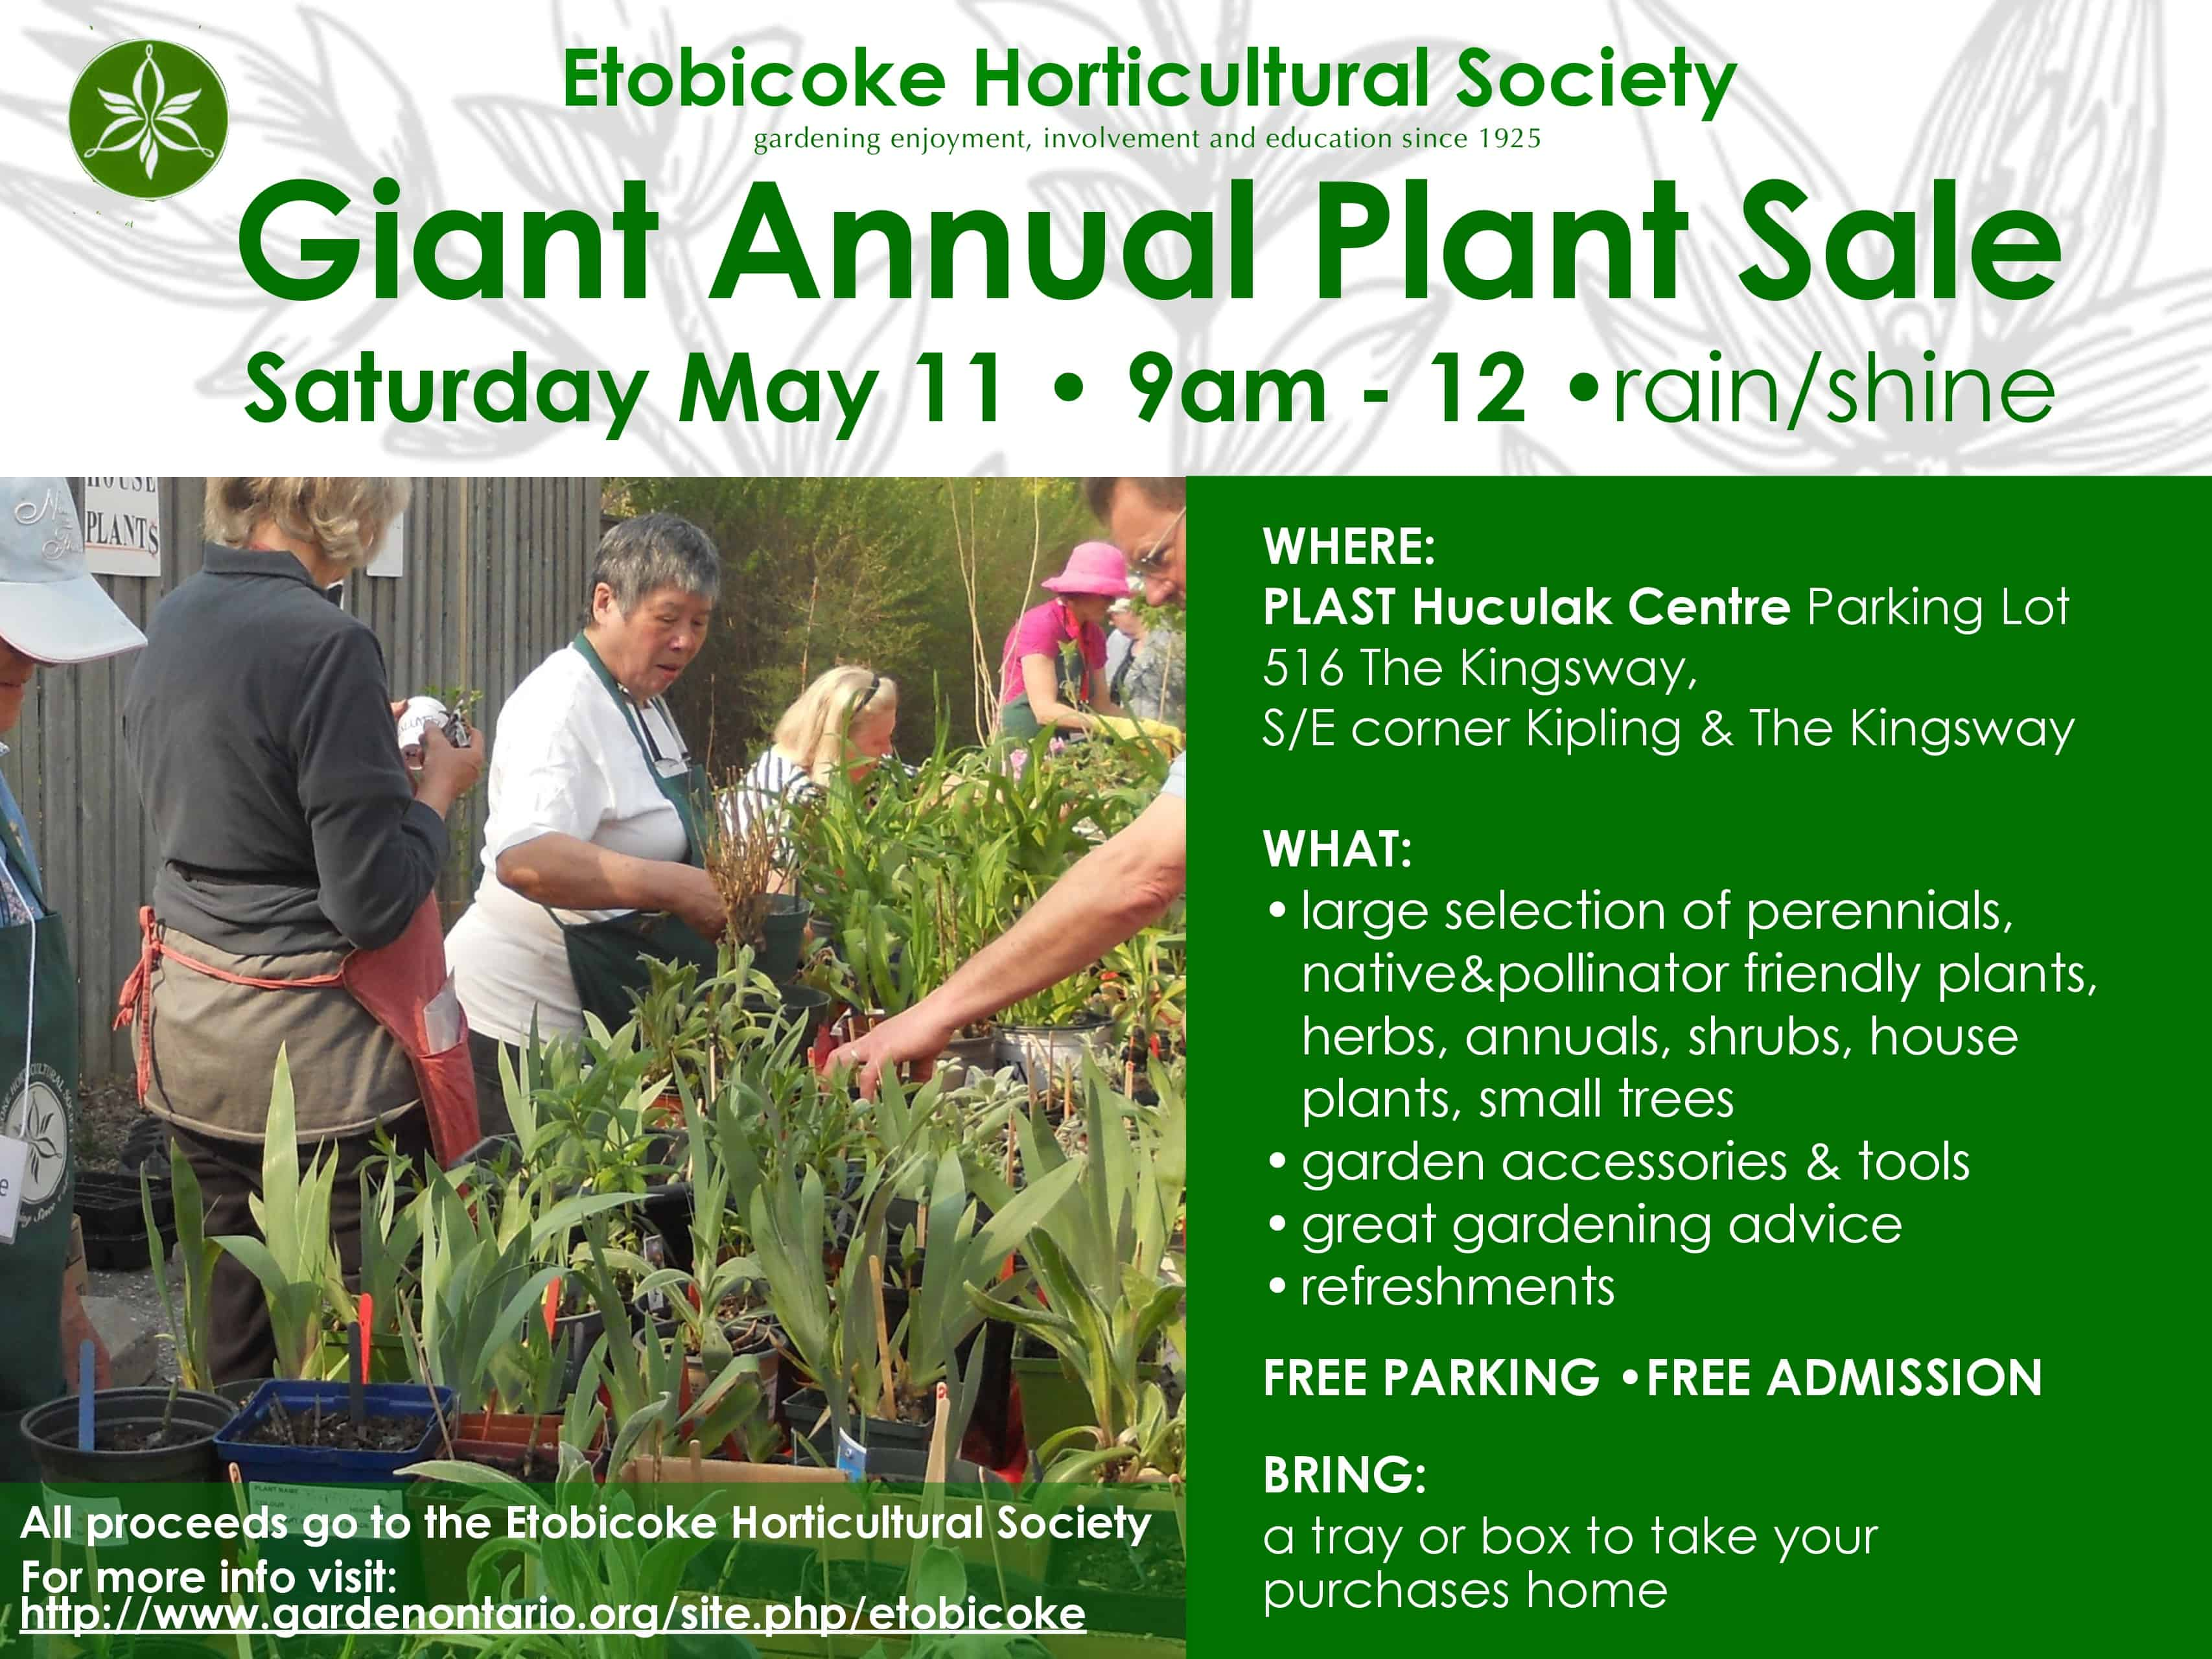 Giant Annual Plant Sale